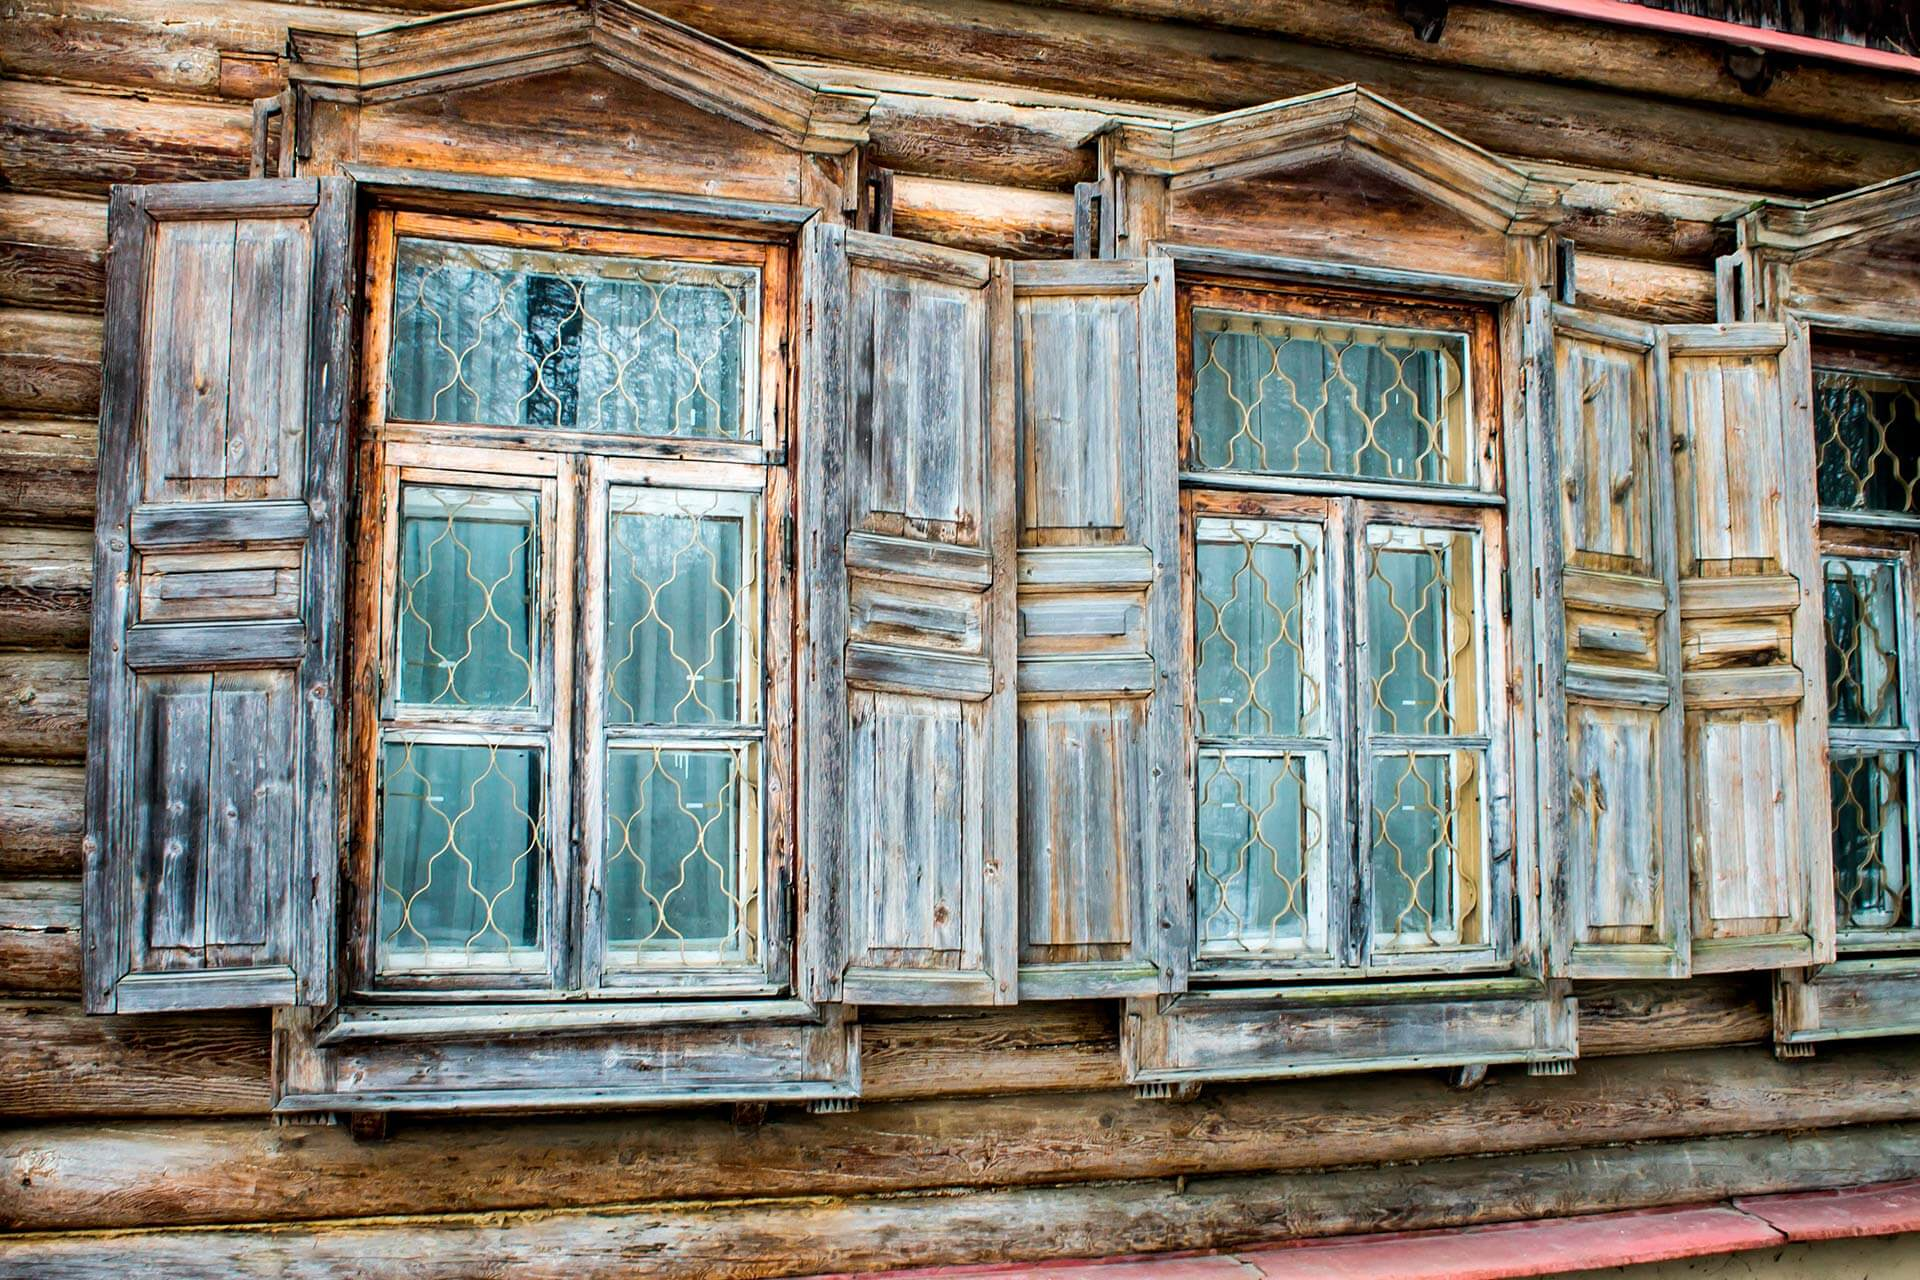 Two windows of a wooden house